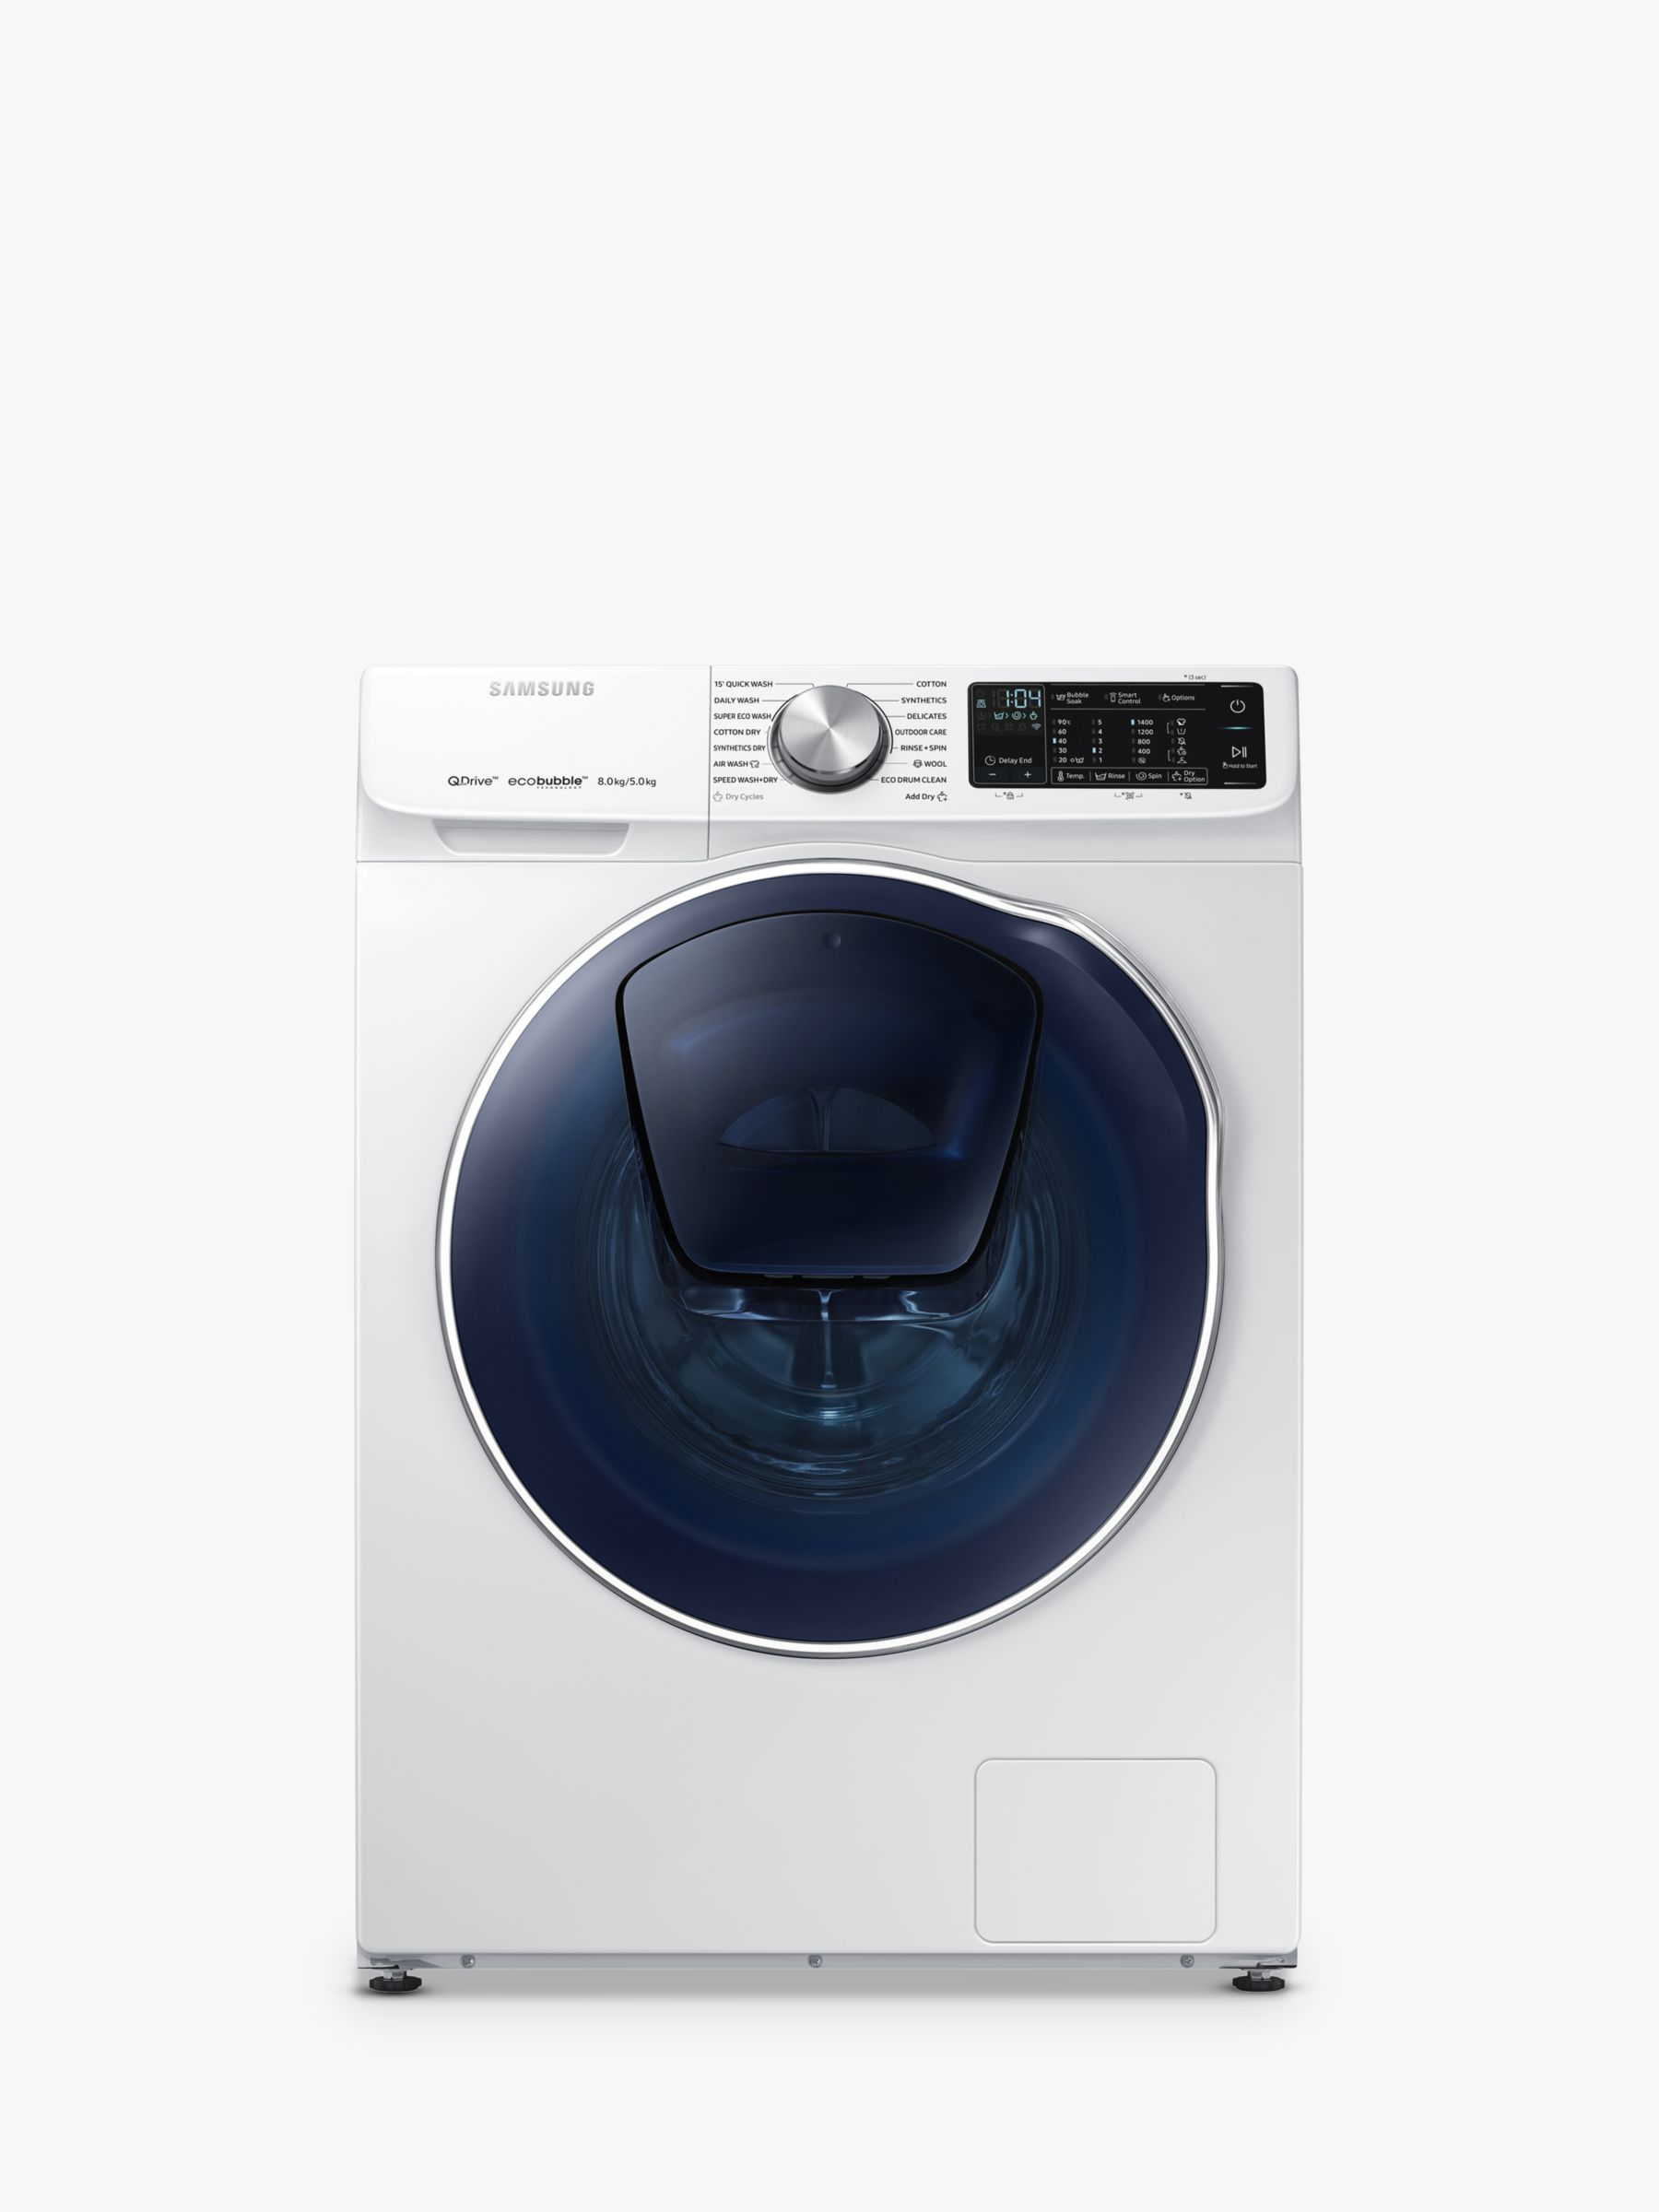 Samsung Samsung WD80N645OOW Washer Dryer, 8kg Wash/5kg Dry Load, A Energy Rating, 1400rpm Spin, White